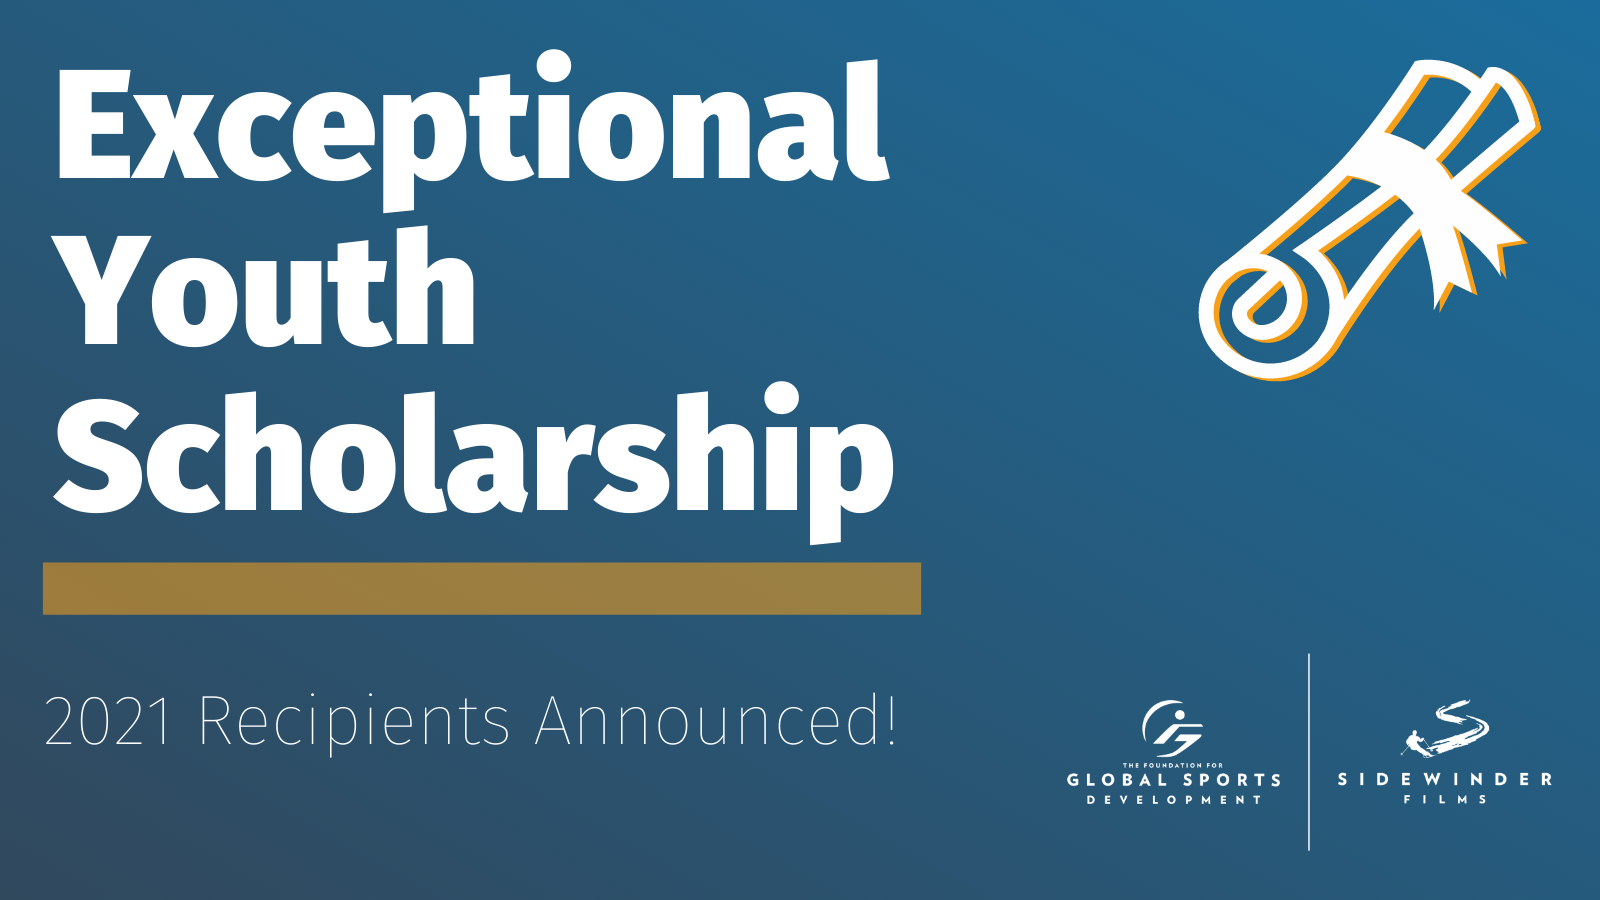 The Foundation for Global Sports Development Awards $60,000 in Scholarships to the Class of 2021